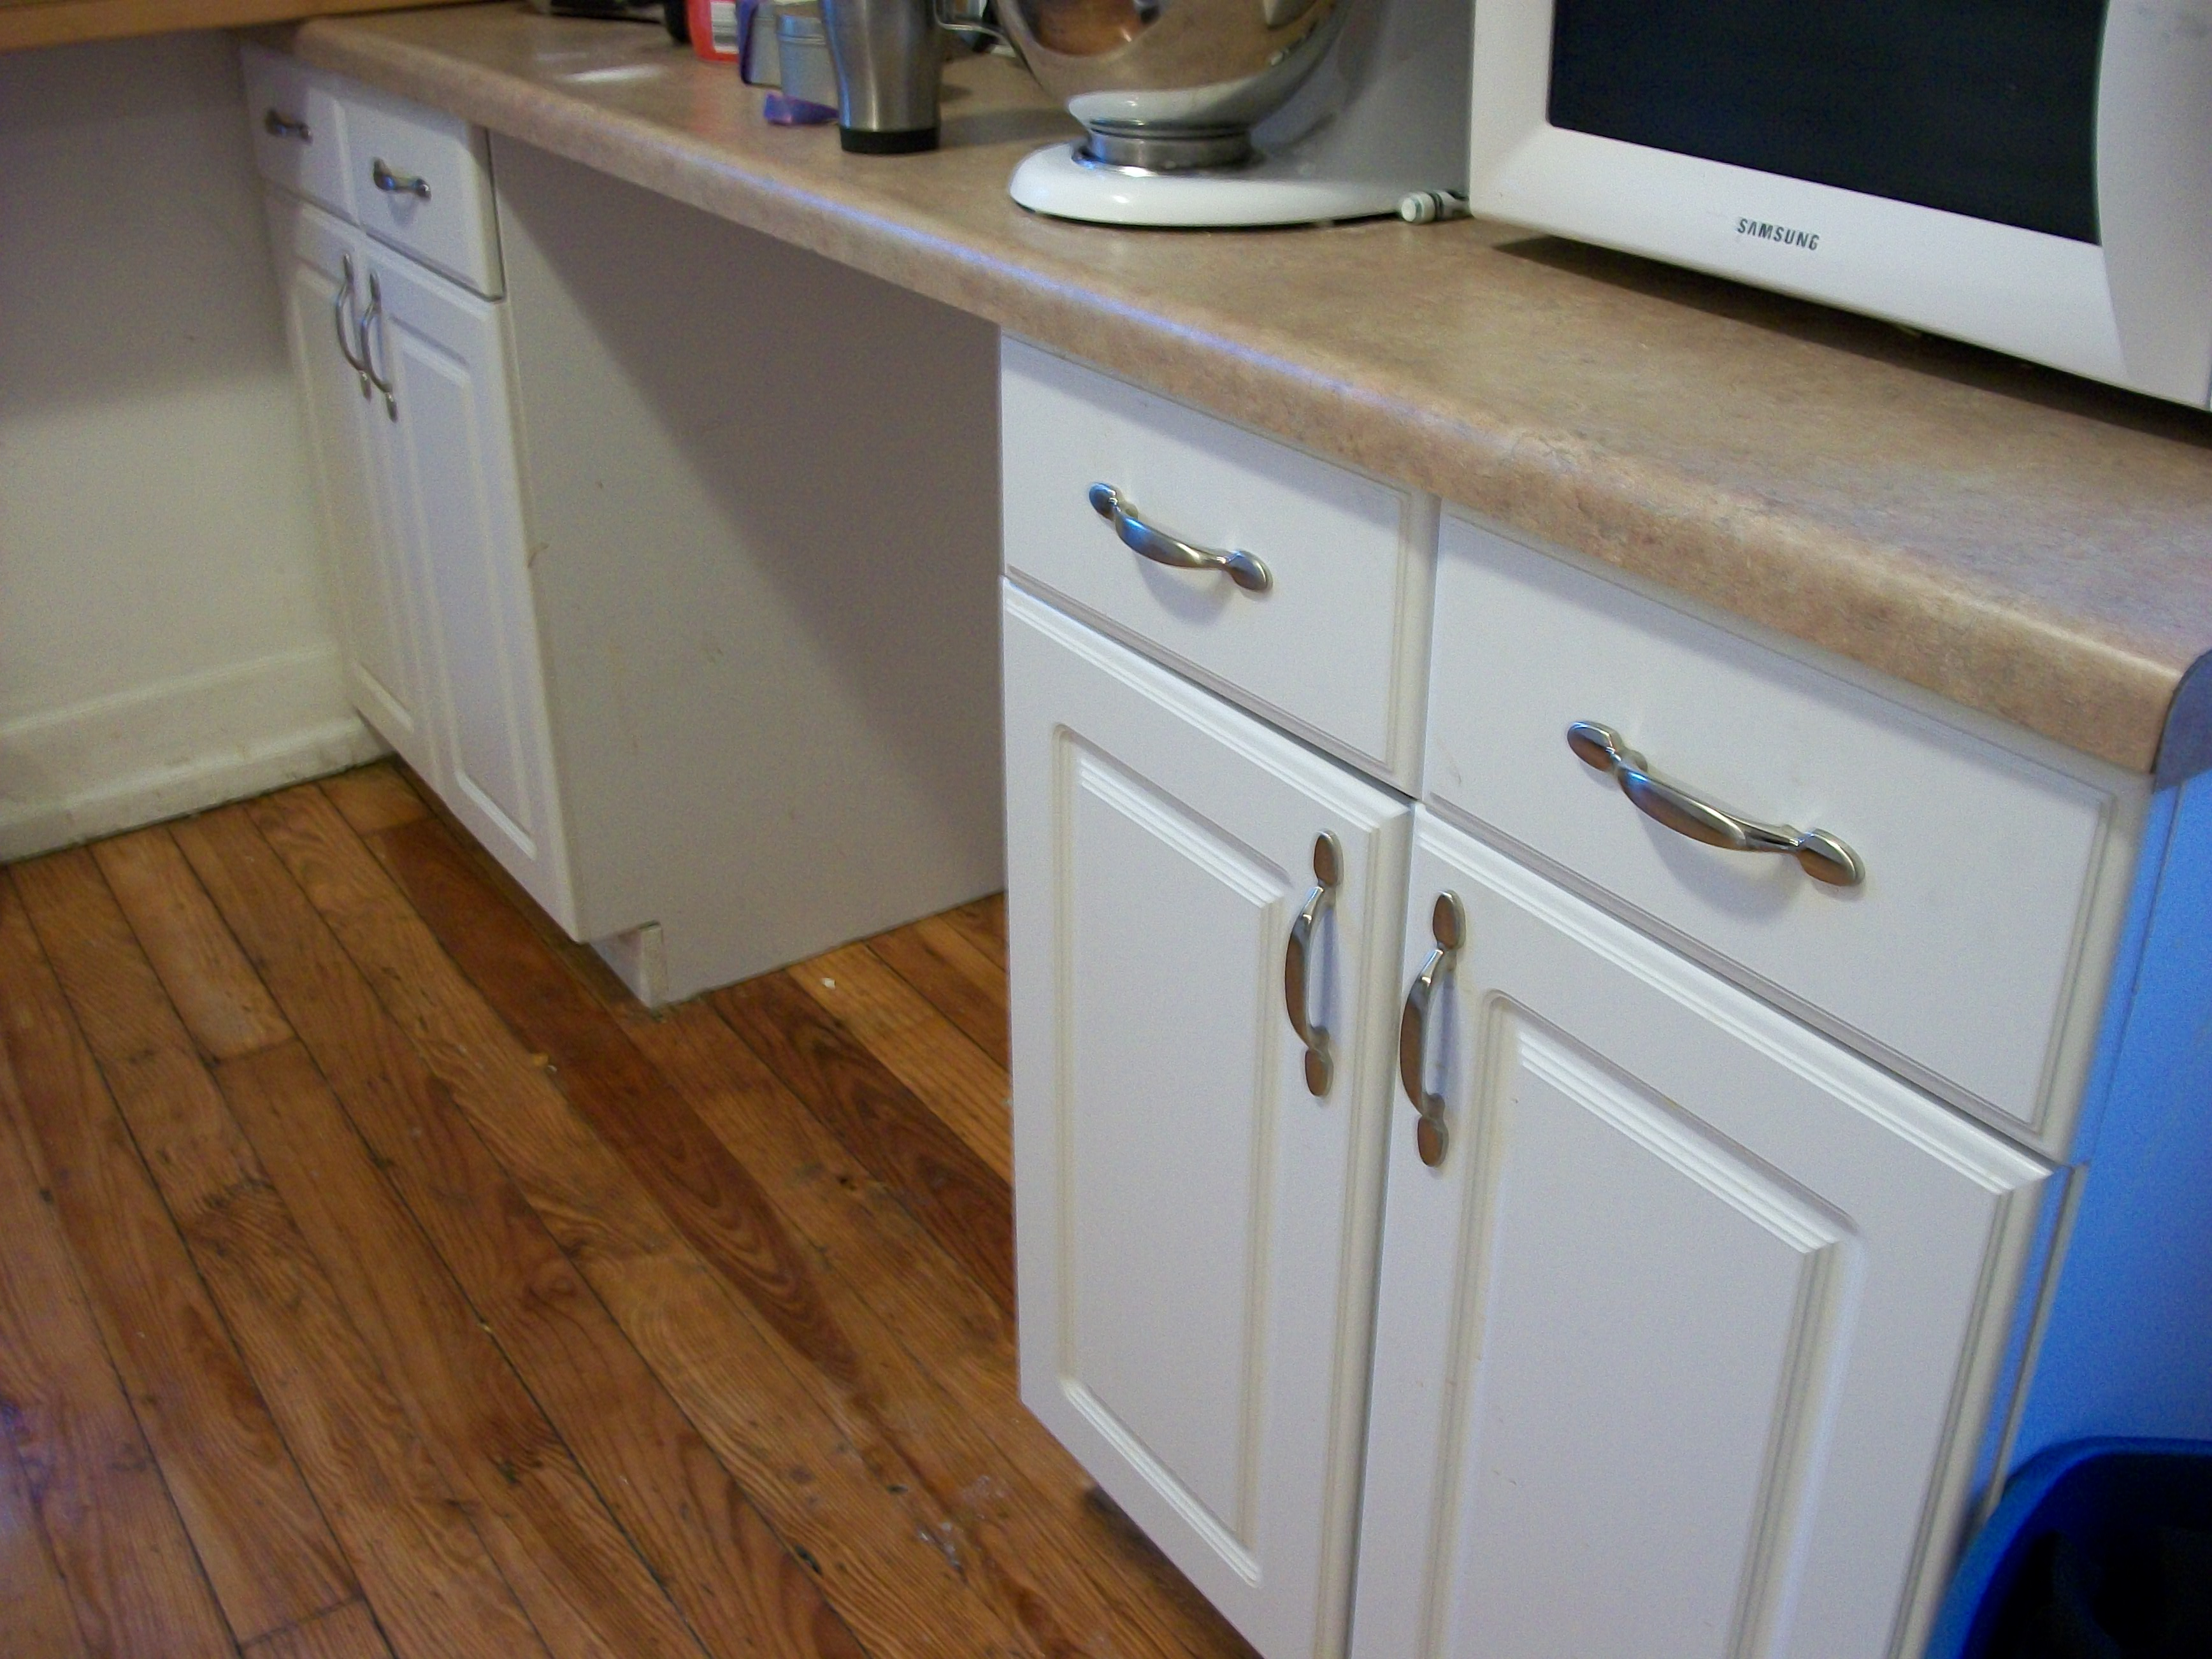 spraying kitchen cabinets solid wood chairs best airless paint sprayer for